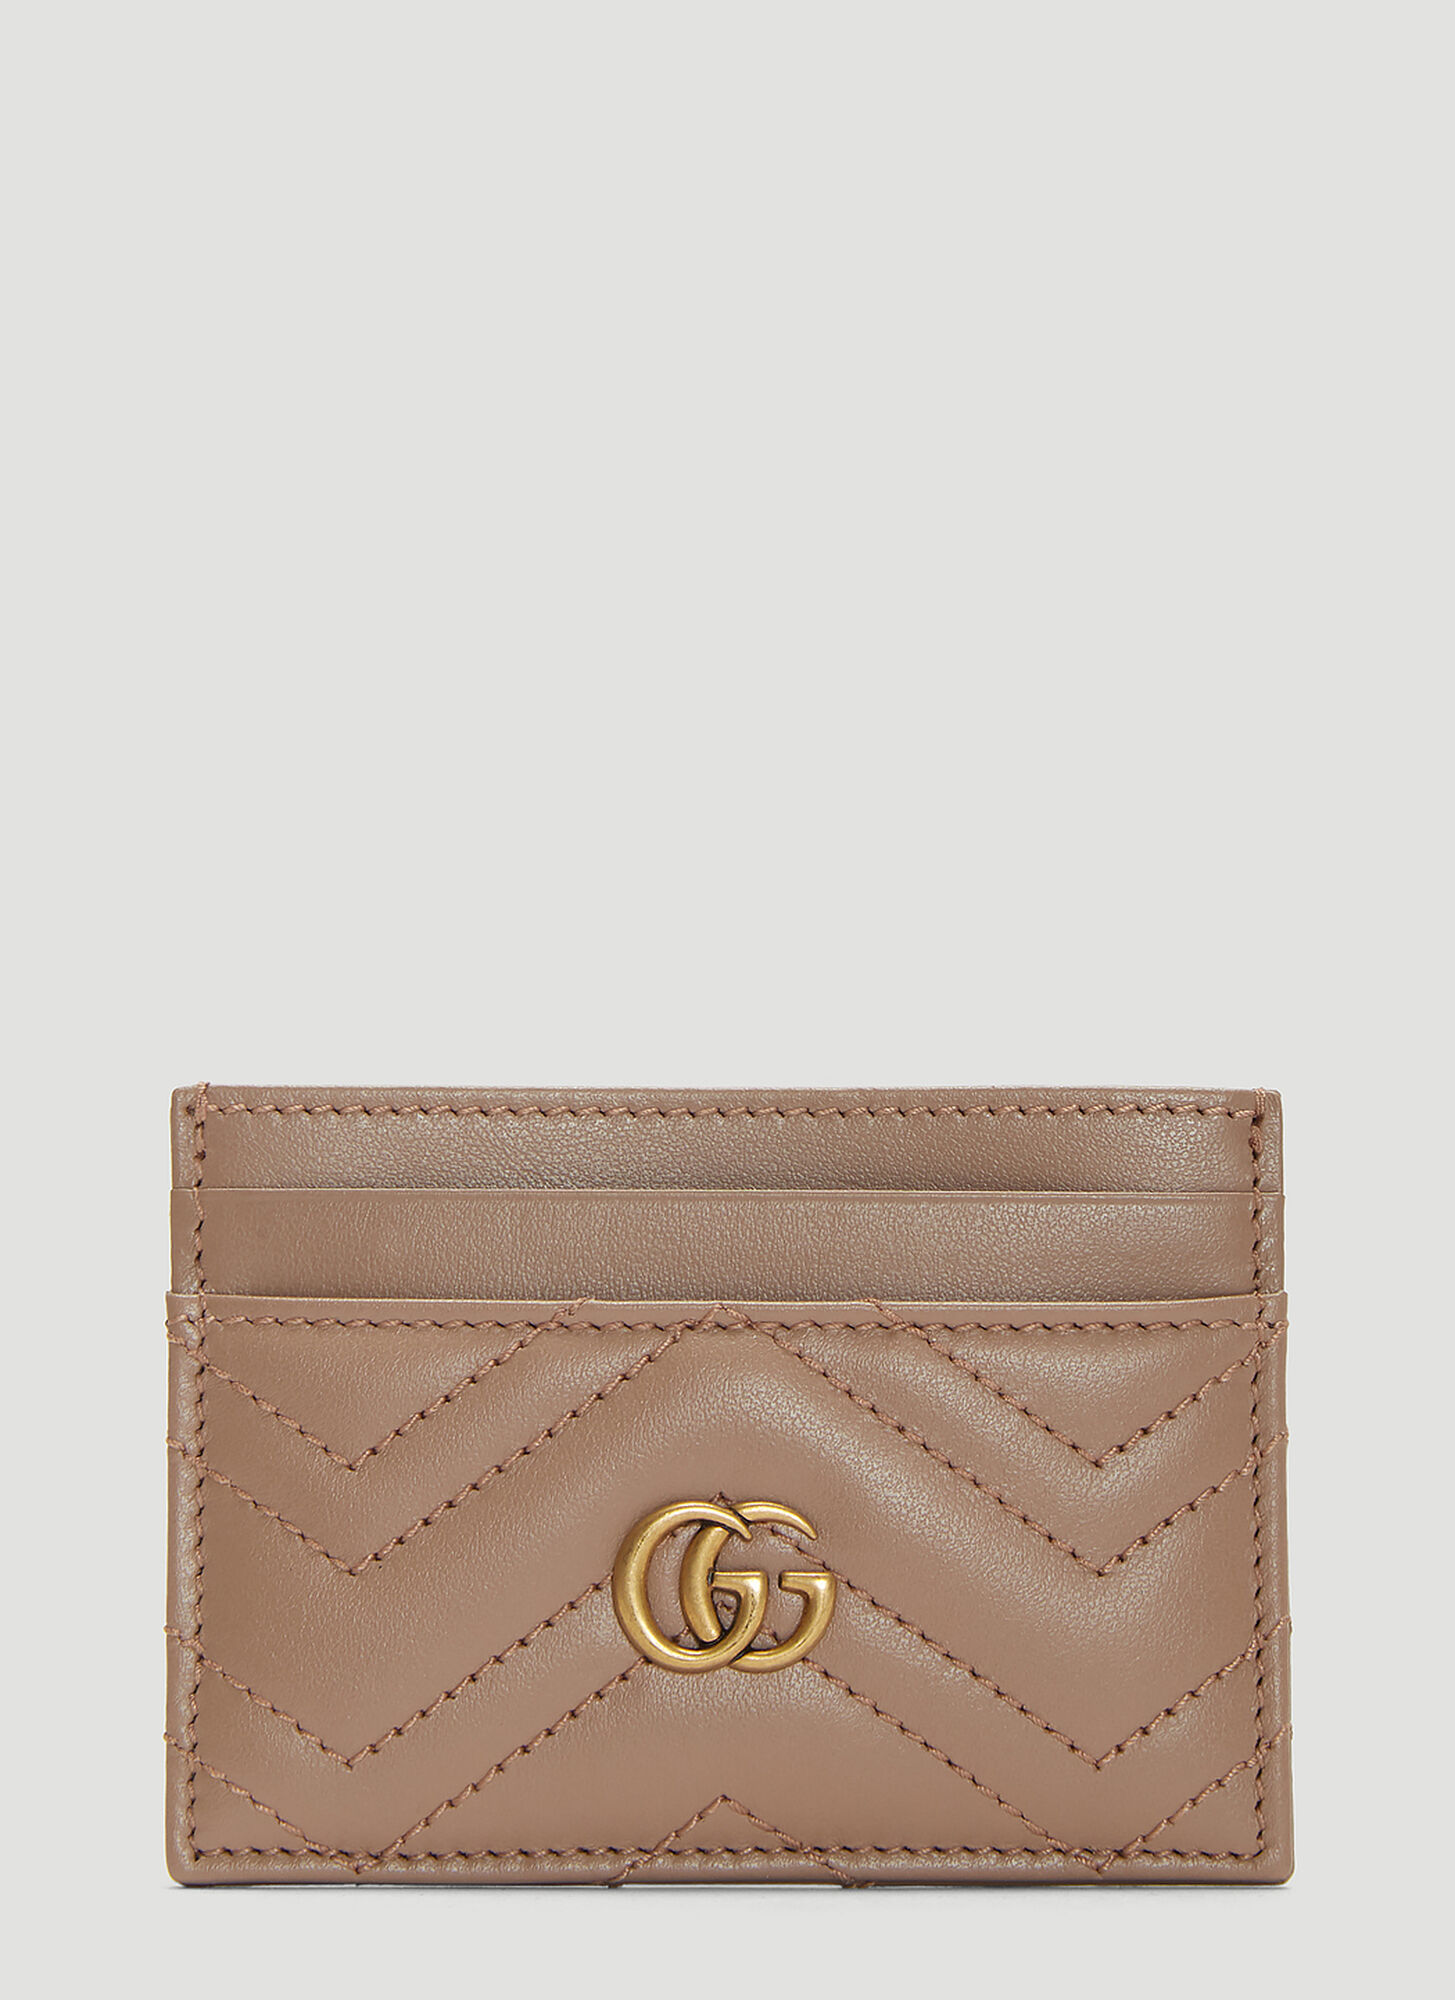 Gucci GG Marmont Card Case in Beige